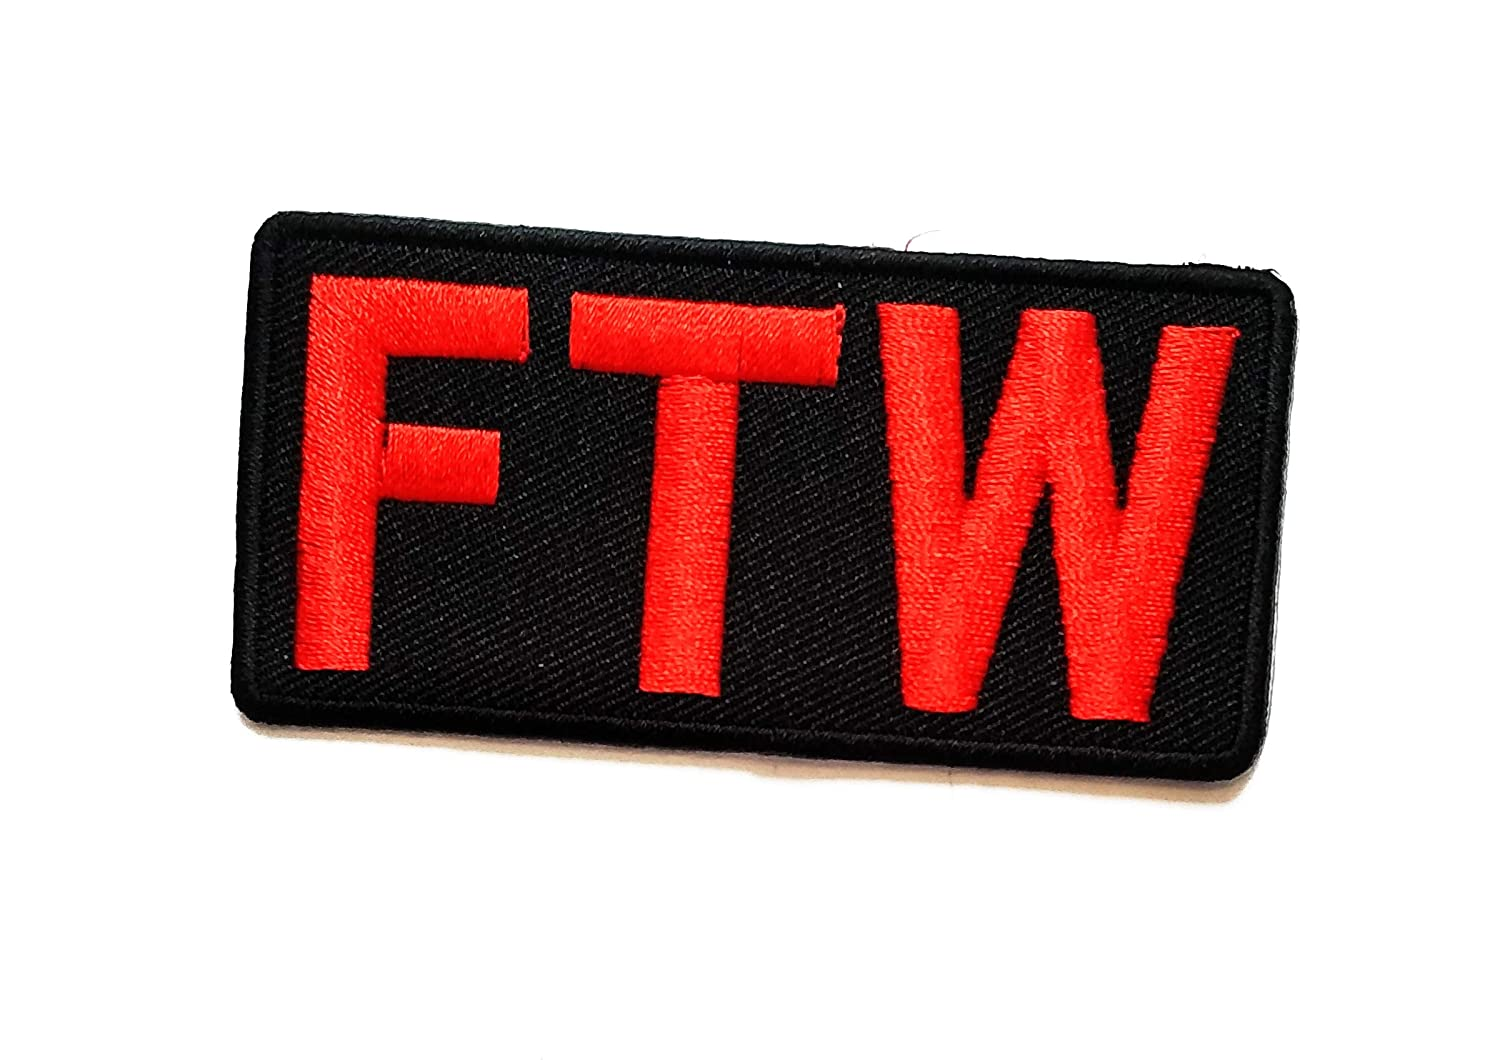 Nipitshop Patches Red FTW Funny Words Patch Funny Joyful Words Motorcycle MC Club Biker Patch Embroidered Iron On Patch for Clothes Backpacks T-Shirt Jeans Skirt Vests Scarf Hat Bag